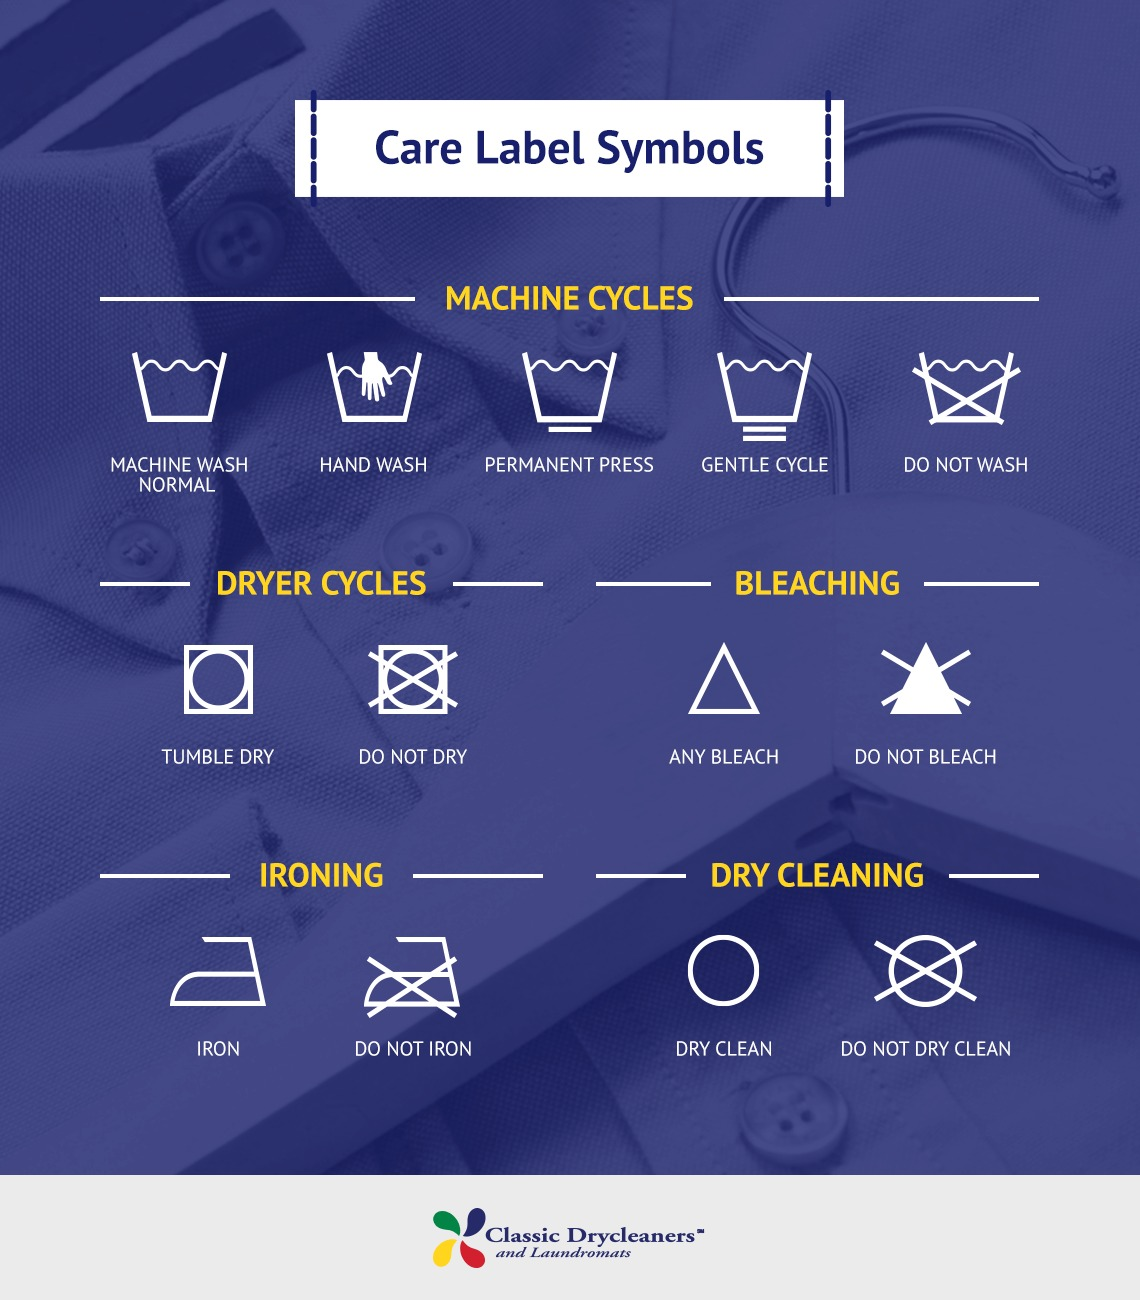 Laundry symbols and names